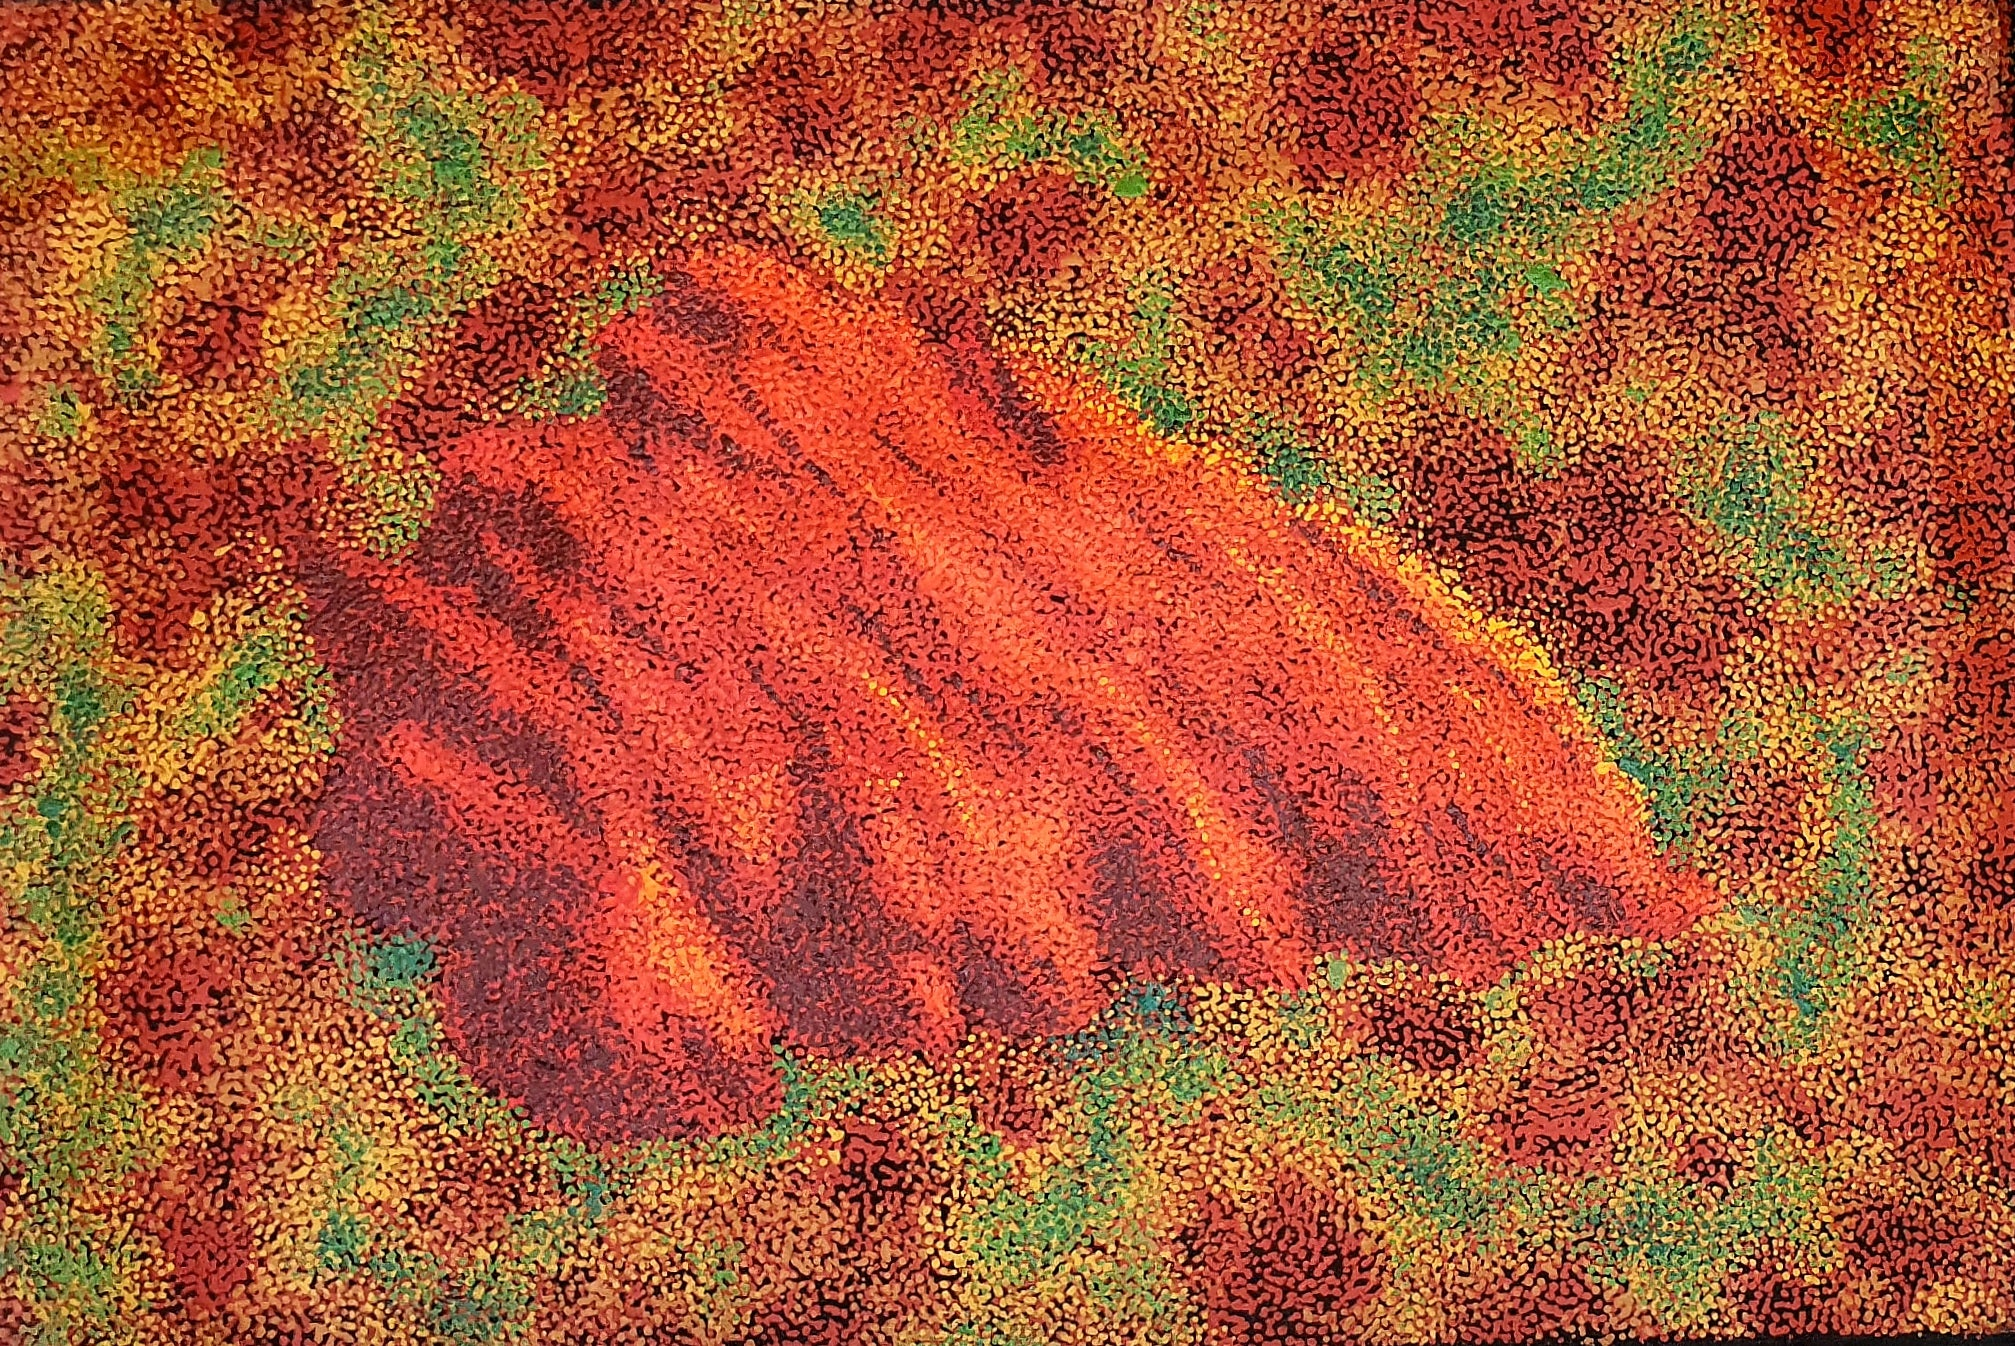 'Ayers Rock'<br>William King Jungala<br>60x90cm